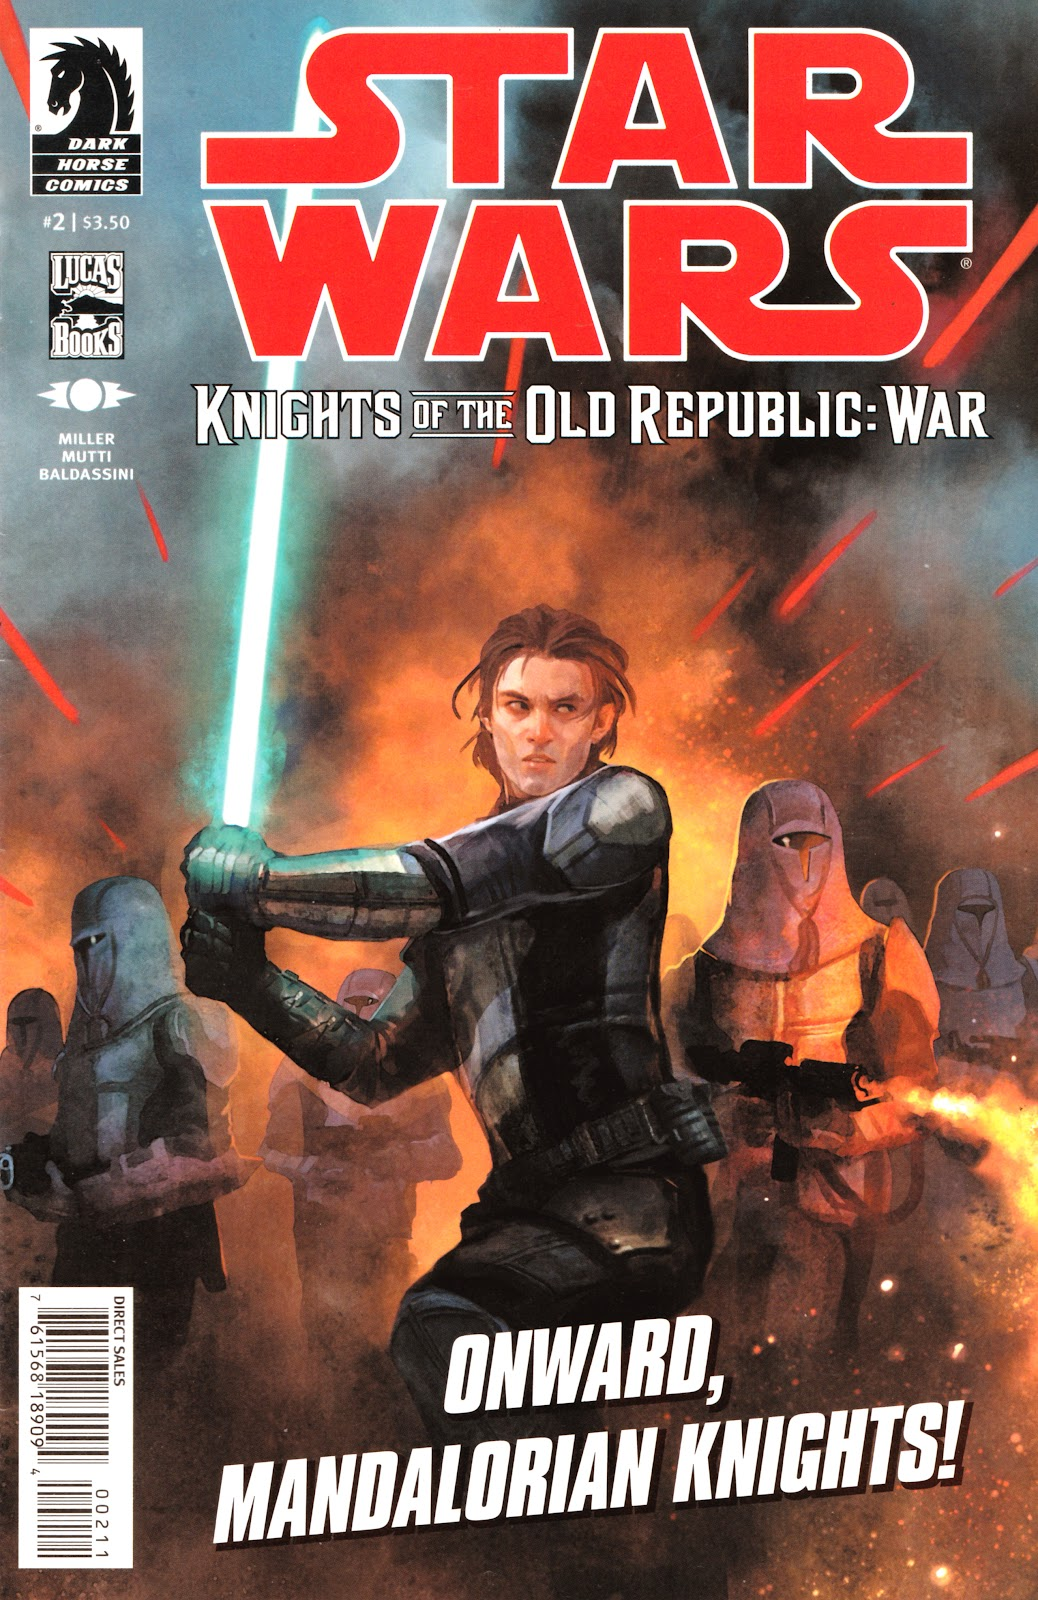 Star Wars: Knights Of The Old Republic - War 2 Page 1